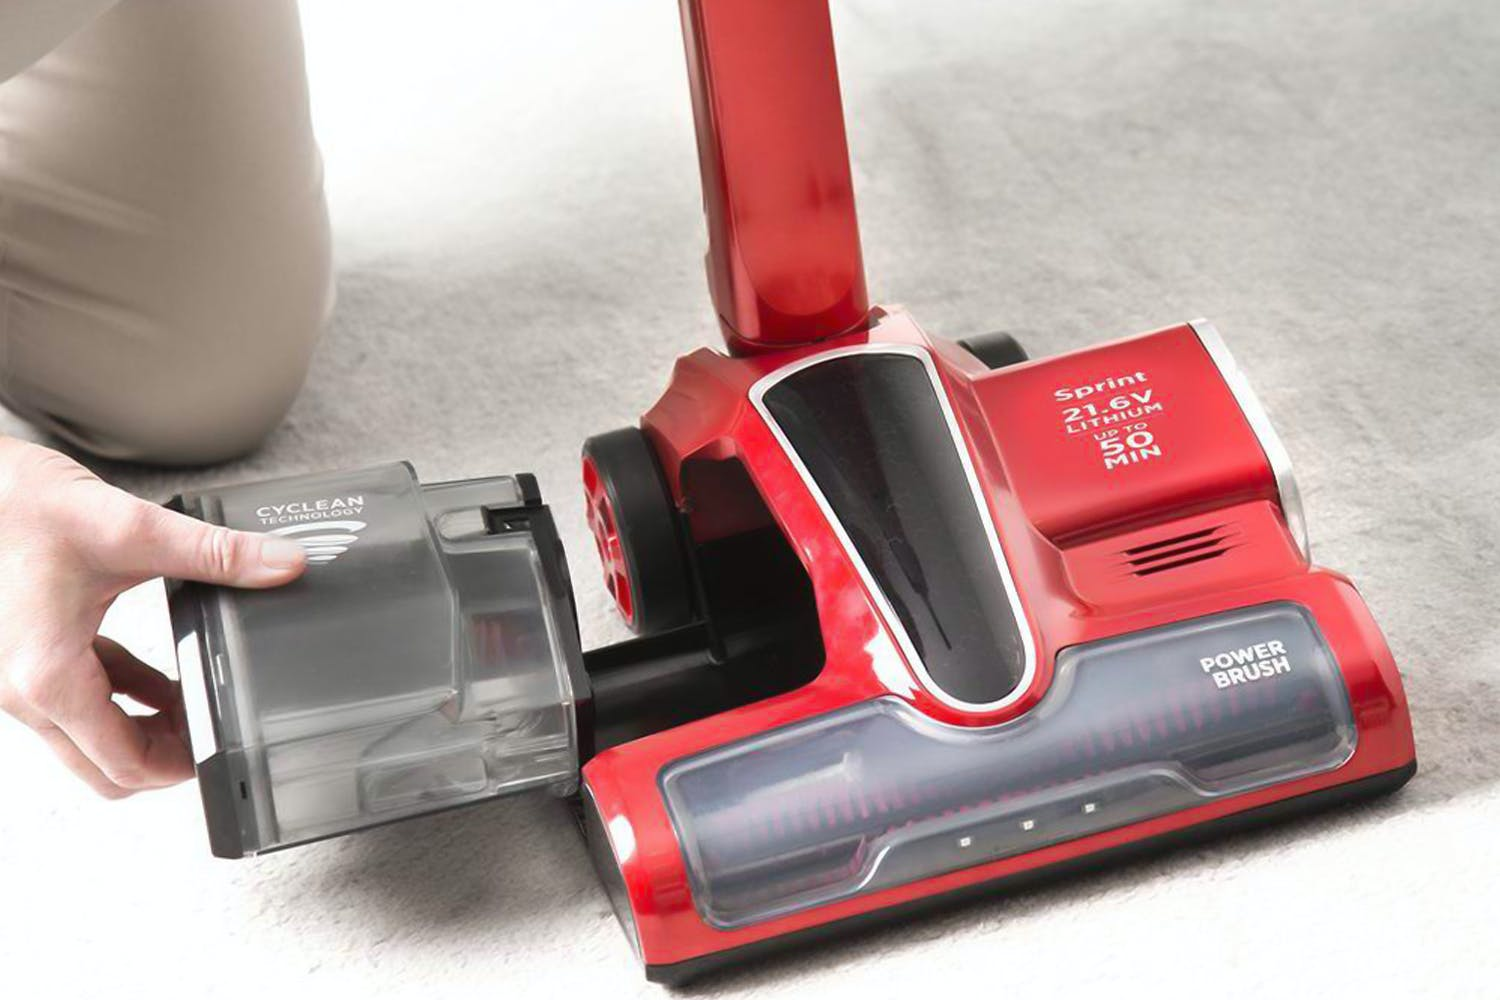 Hoover Sprint Cordless Stick Vacuum Cleaner Si216rb